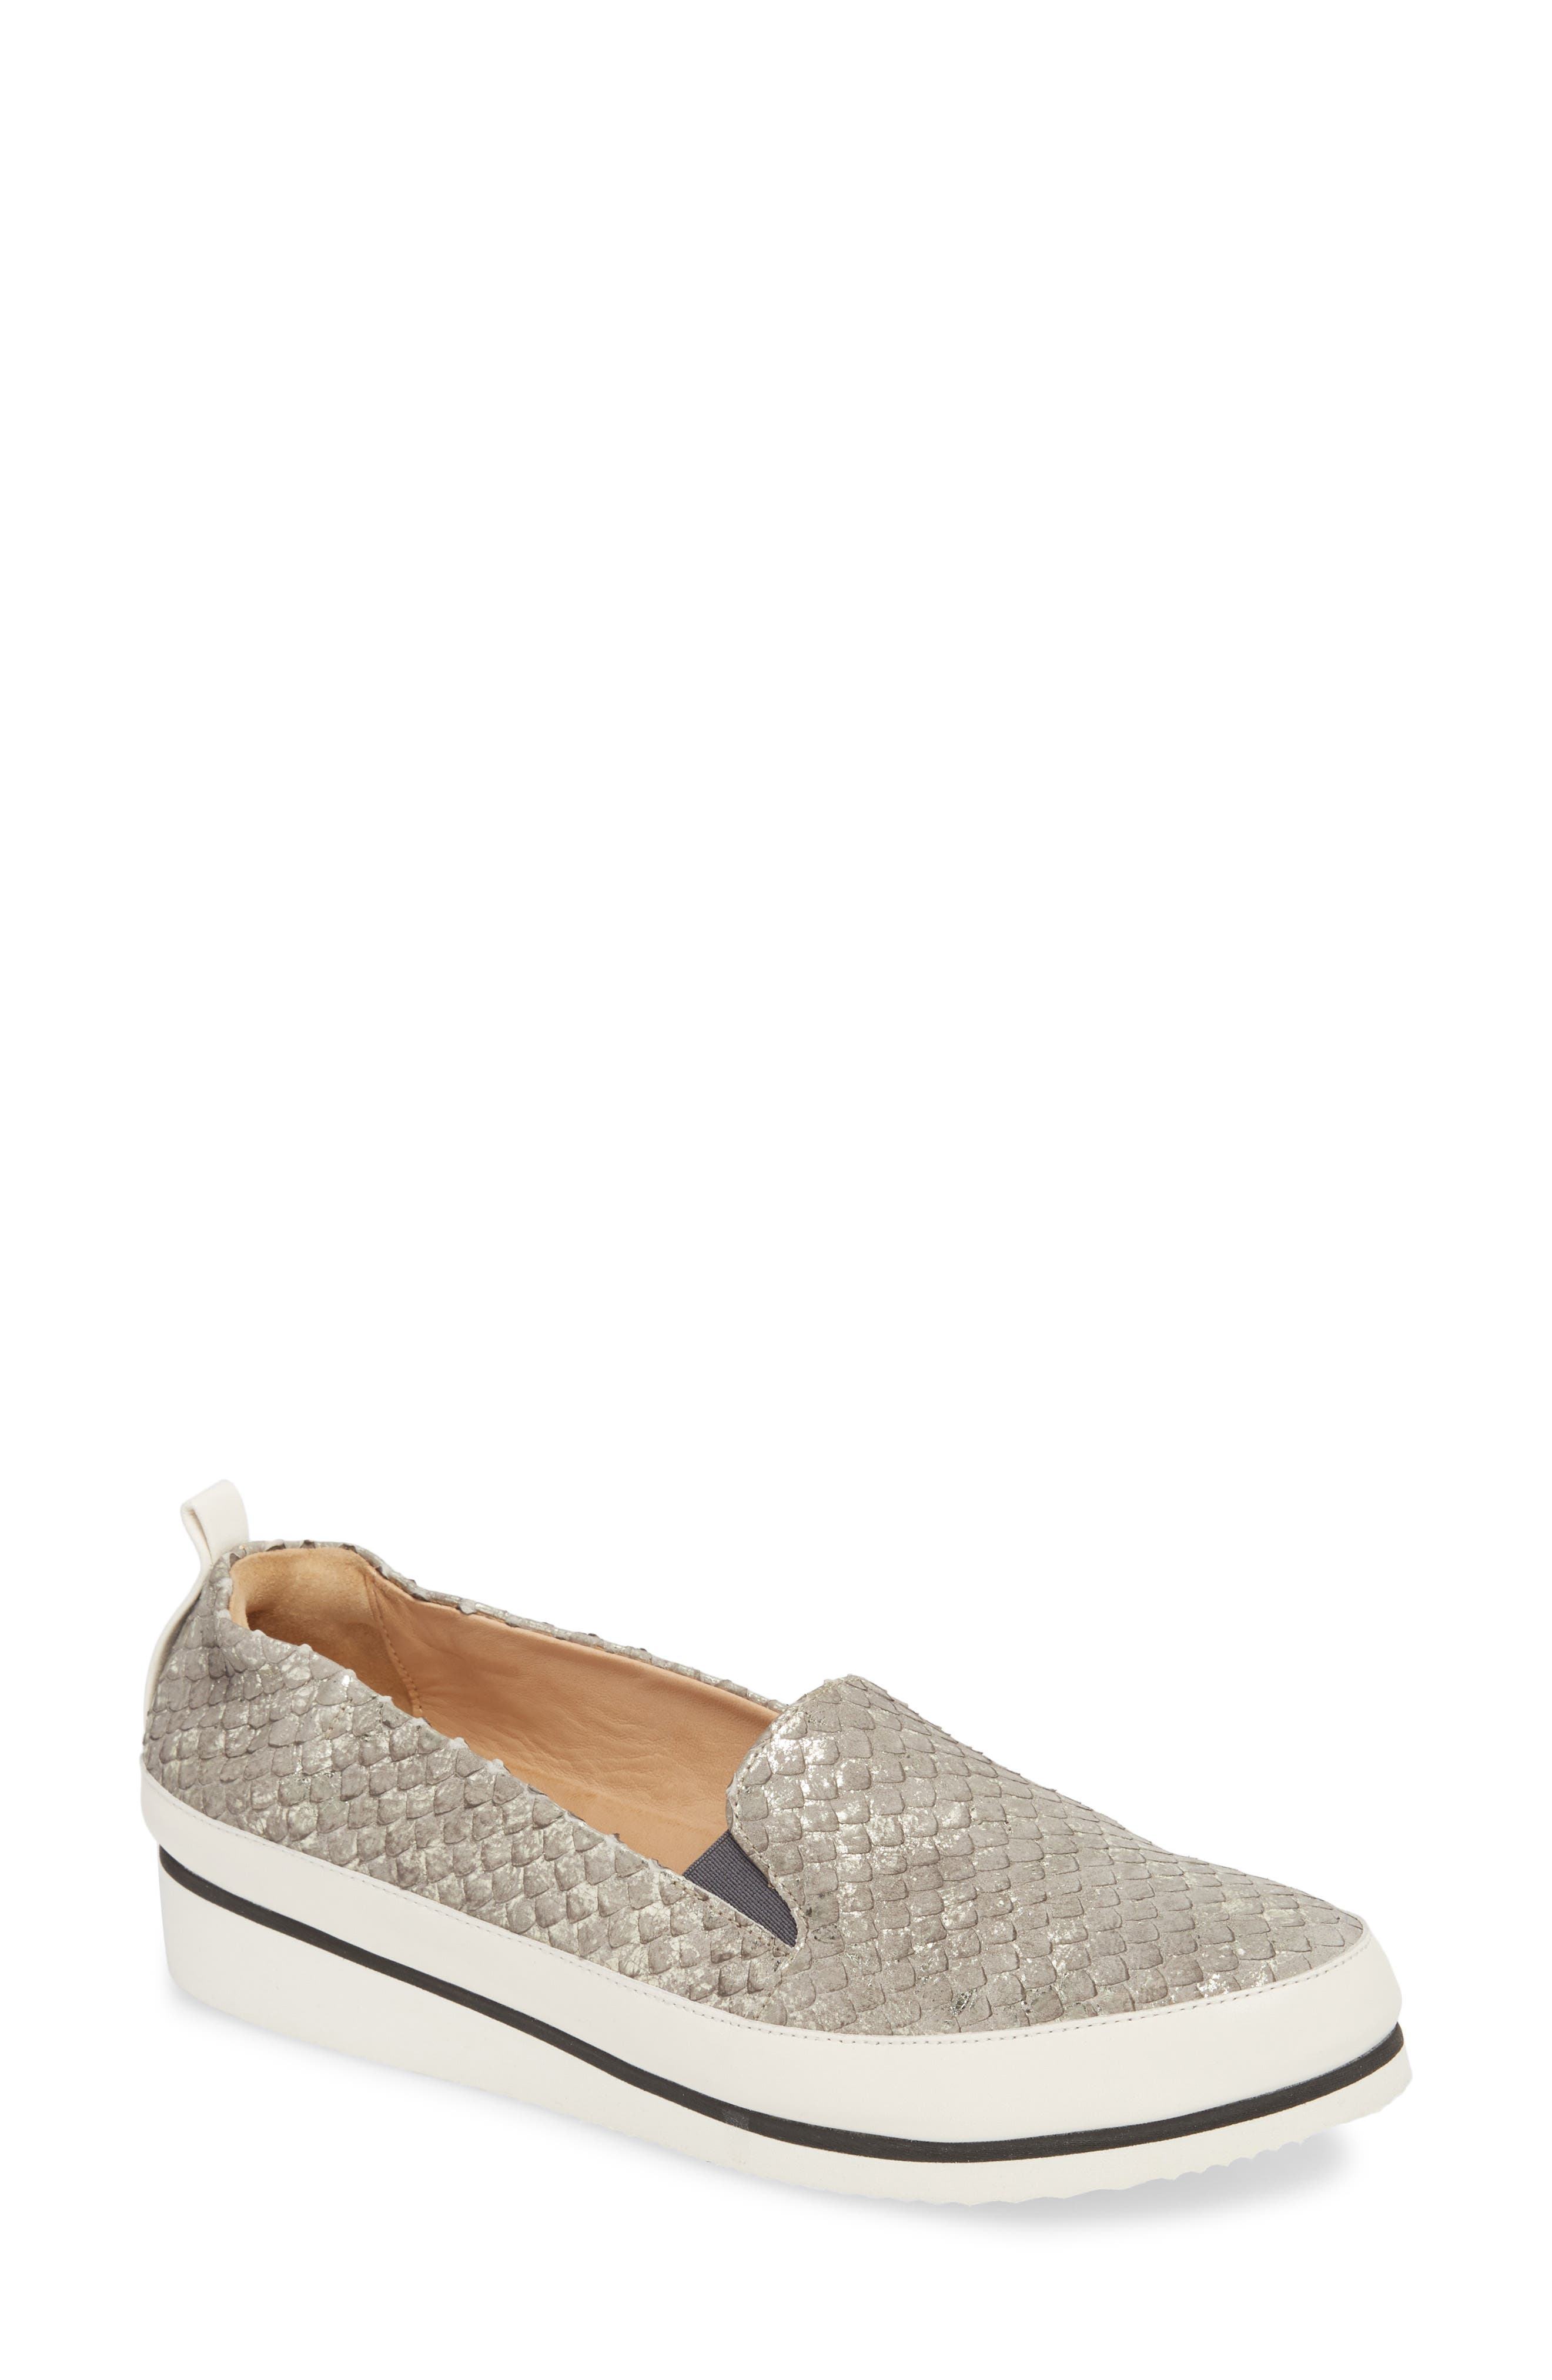 Nell Slip-On Sneaker,                             Main thumbnail 1, color,                             Pewter Leather